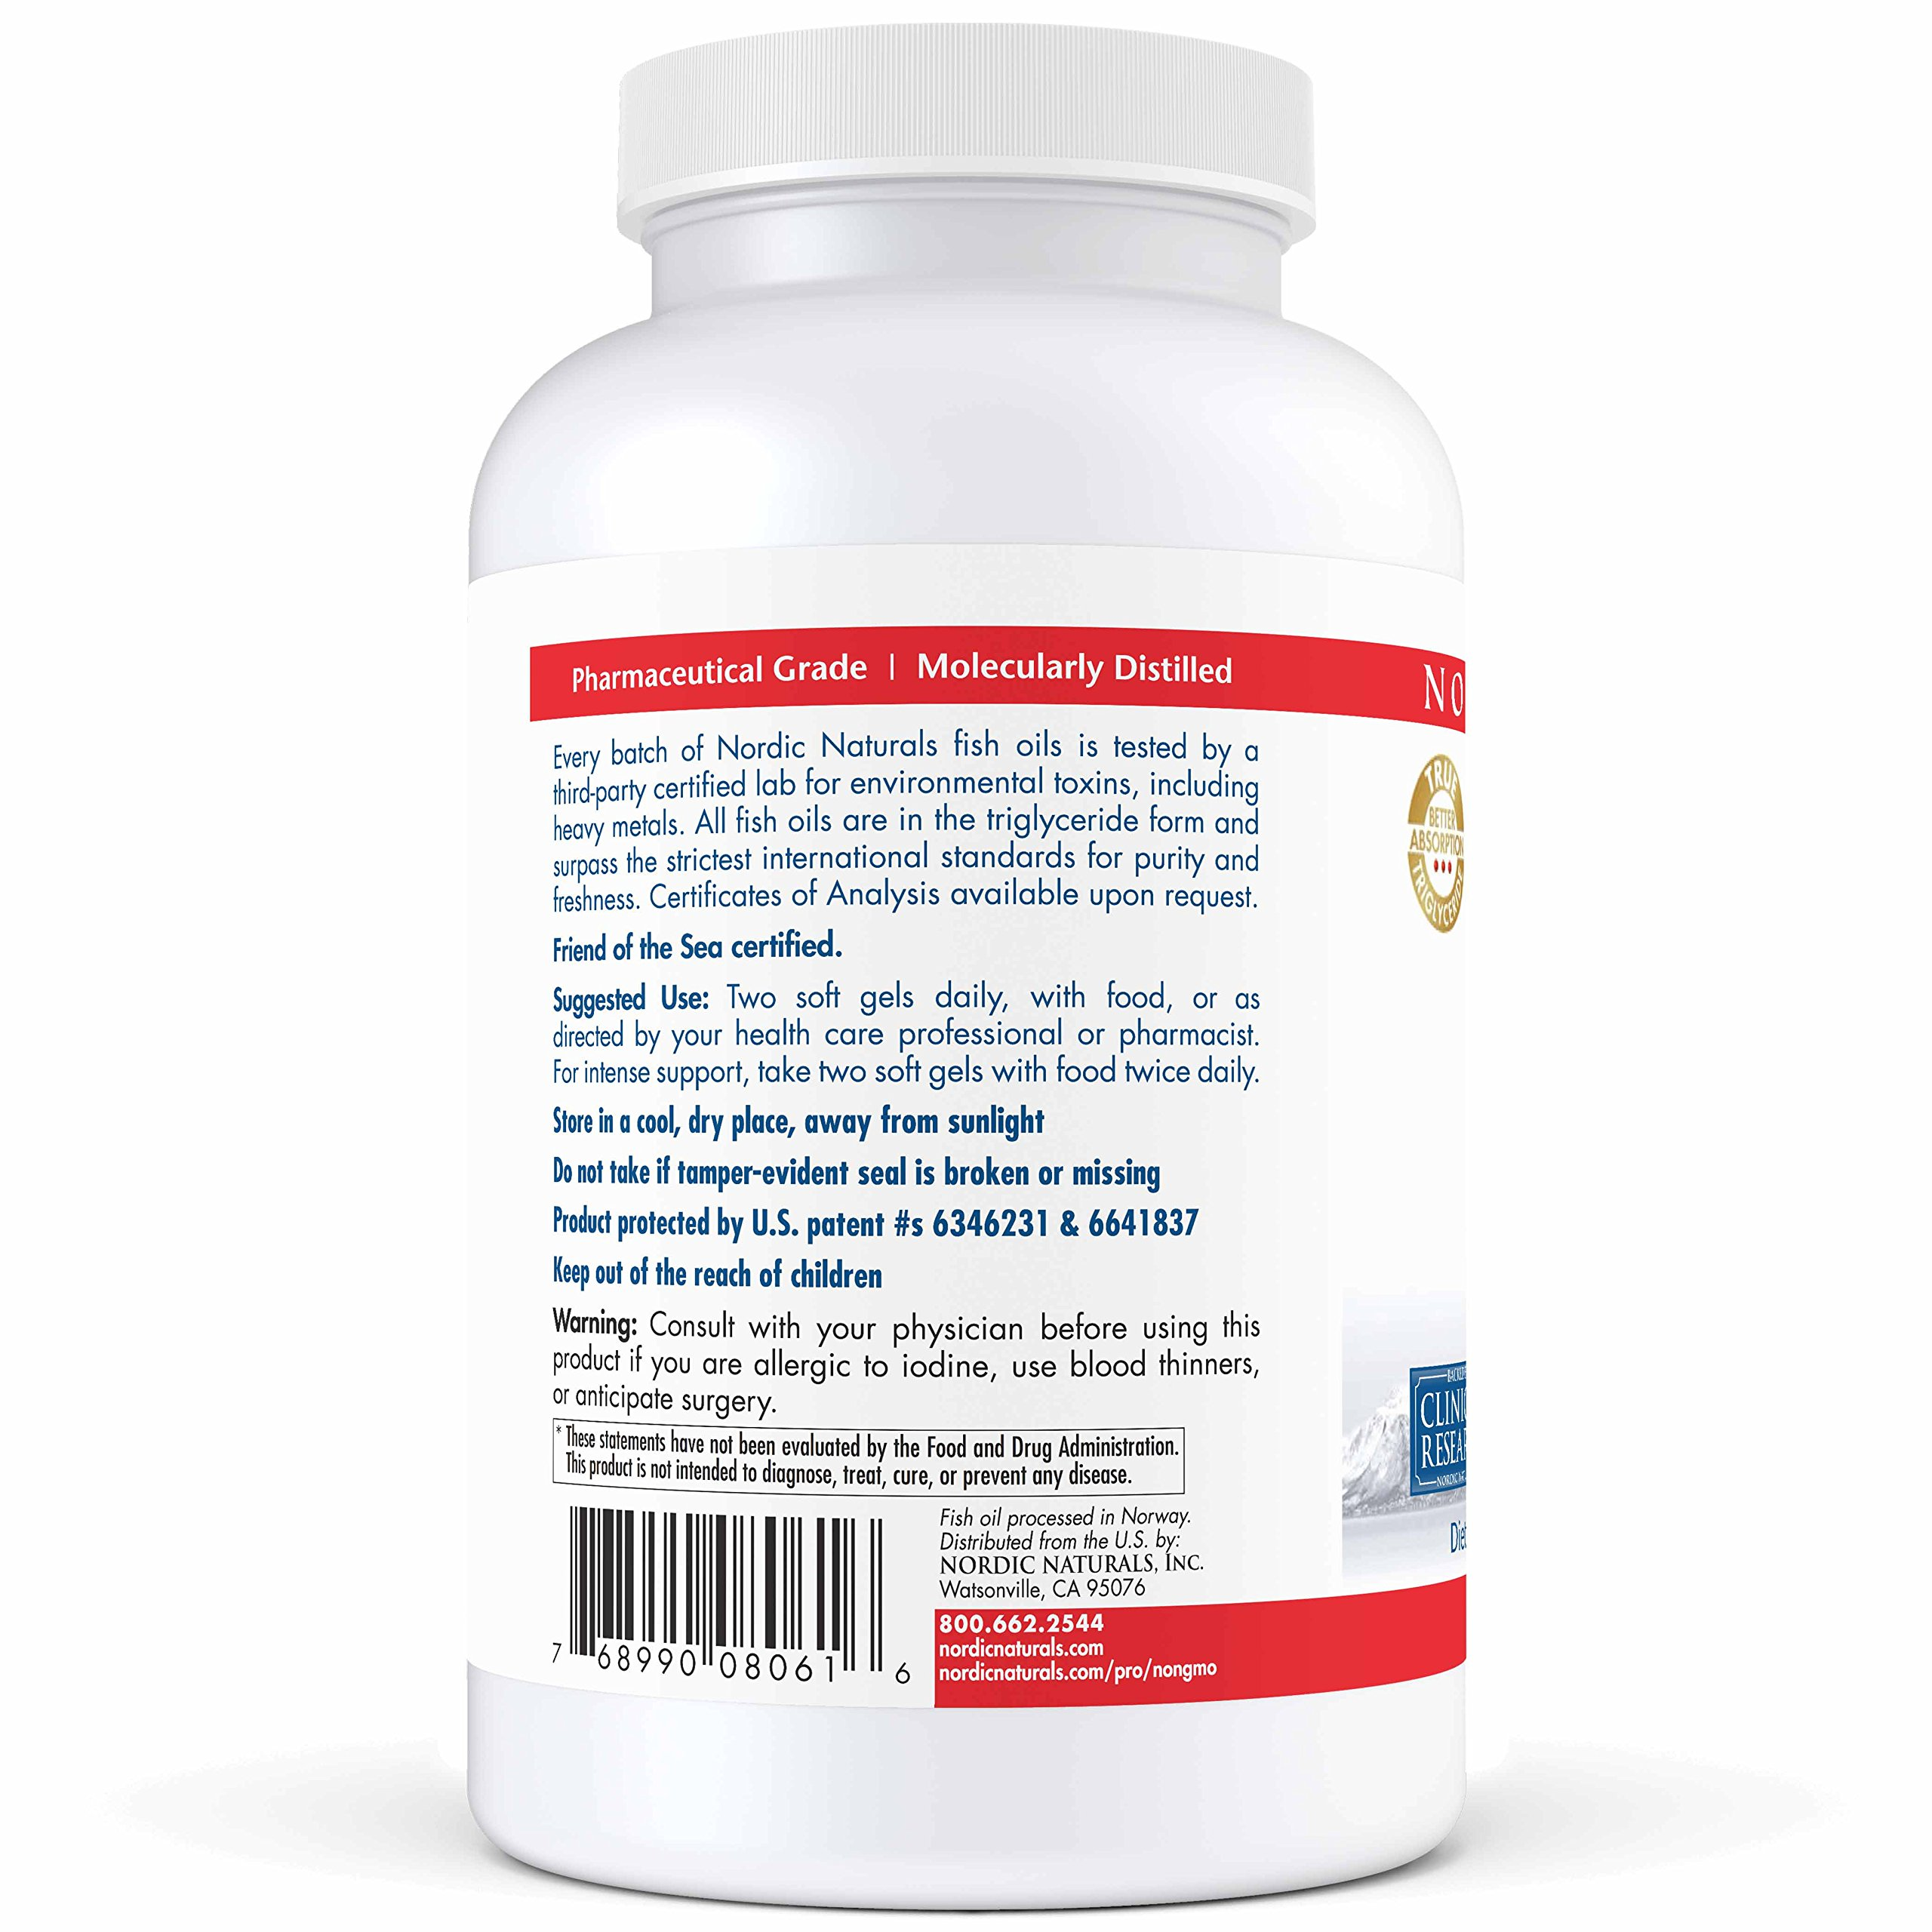 Nordic Naturals Pro - Proepa, Promotes Cardiovascular Health, 60 Count by Nordic Naturals (Image #4)